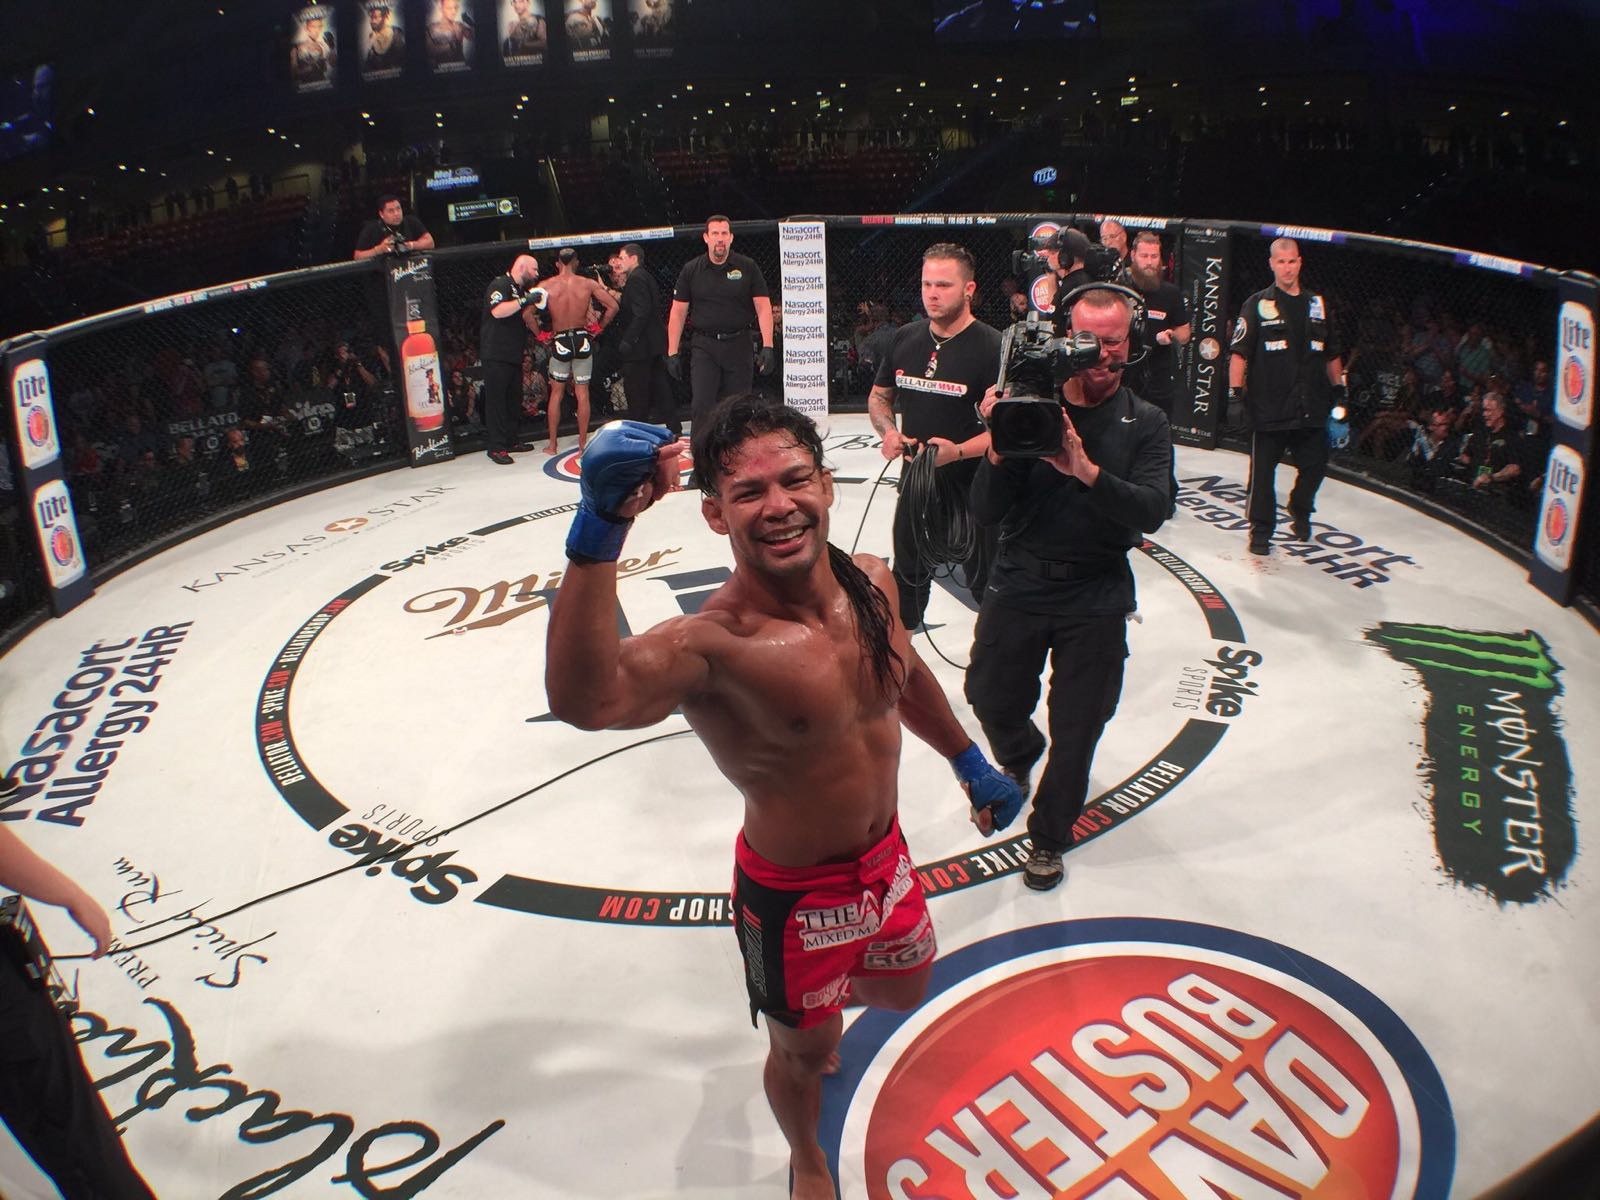 FULL FIGHT VIDEO: Guam's Baby Joe Taimanglo Bellator 159 win over Darrion Caldwell